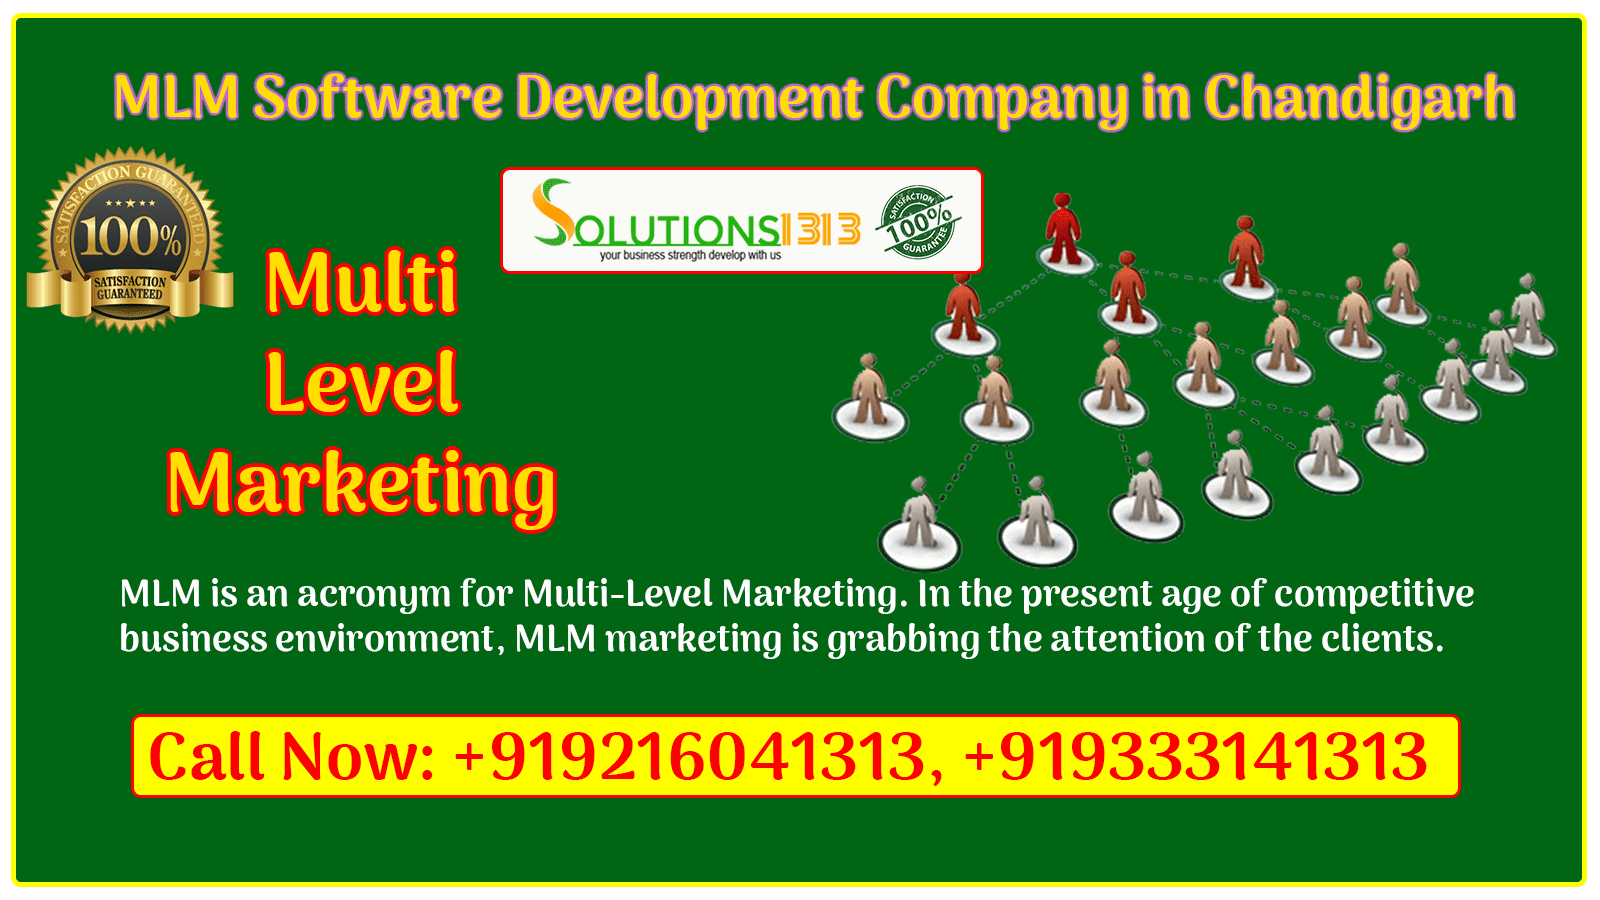 MLM Software Development Company in Chandigarh